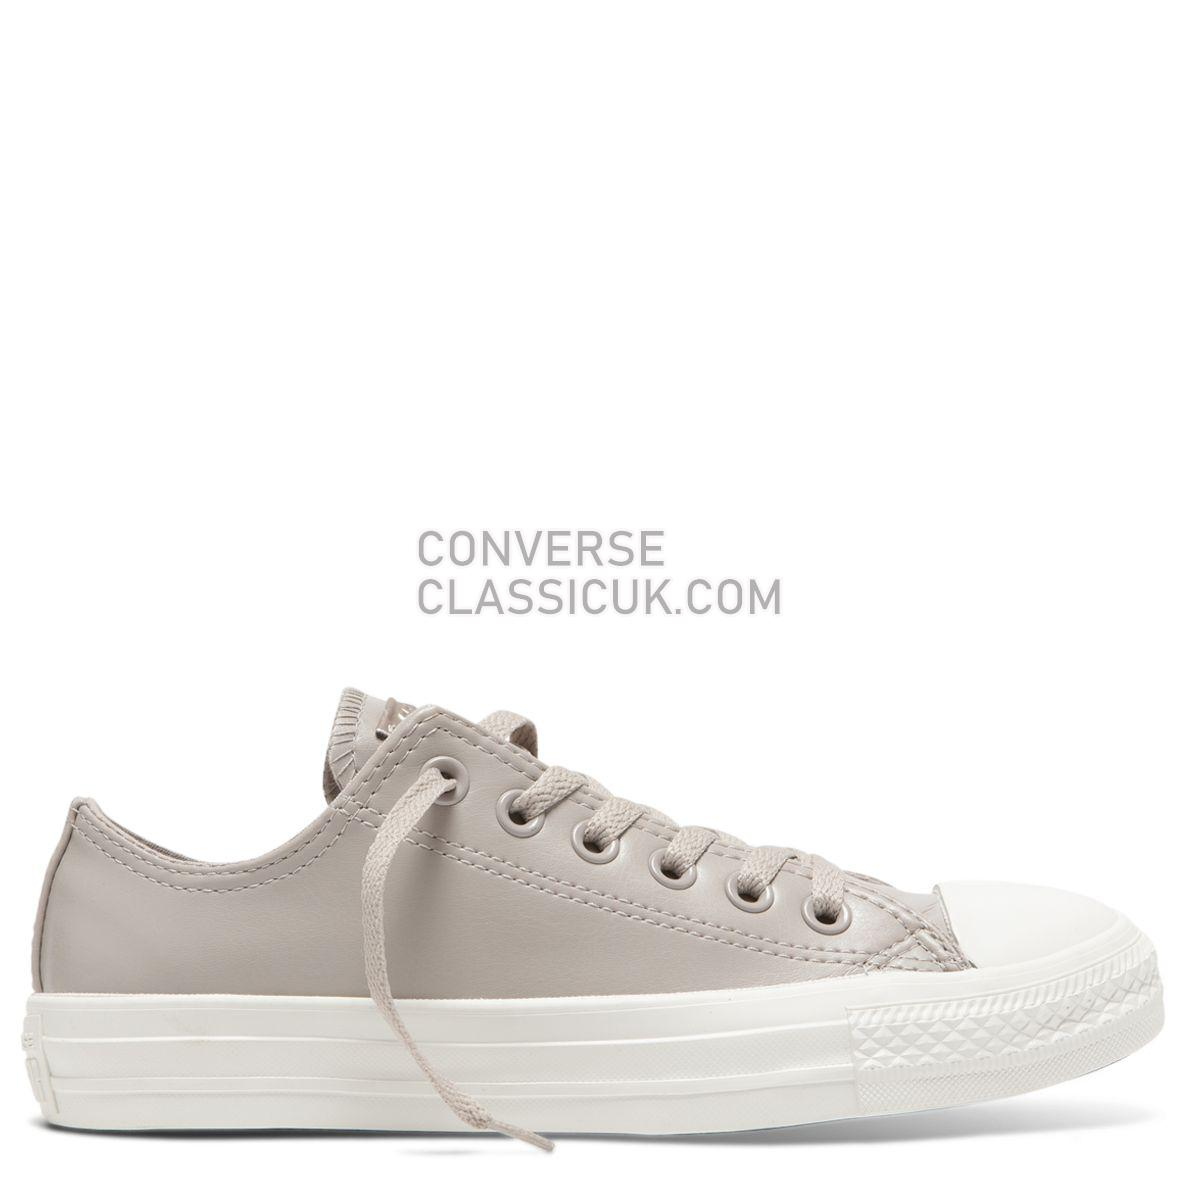 Converse Chuck Taylor All Star Craft SL Low Top Moon Particle Womens 564419 Moon Particle/Moon Particle/Vintage White Shoes